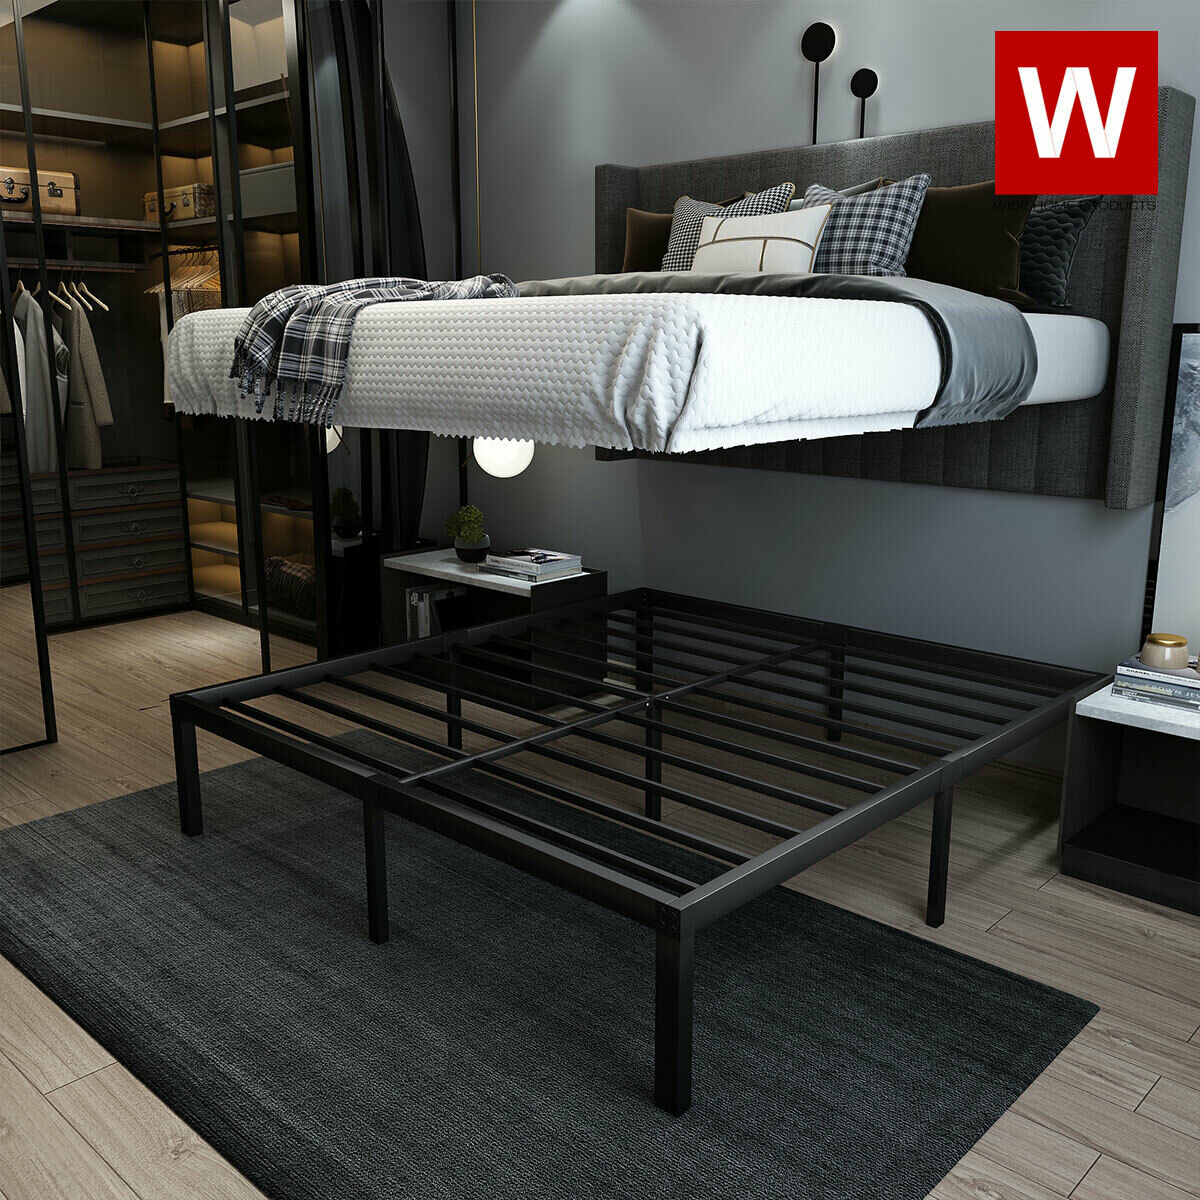 King Bed Frame Platform 14 Heavy Duty Slat Black Steel Bedroom Furniture For Sale Online Ebay